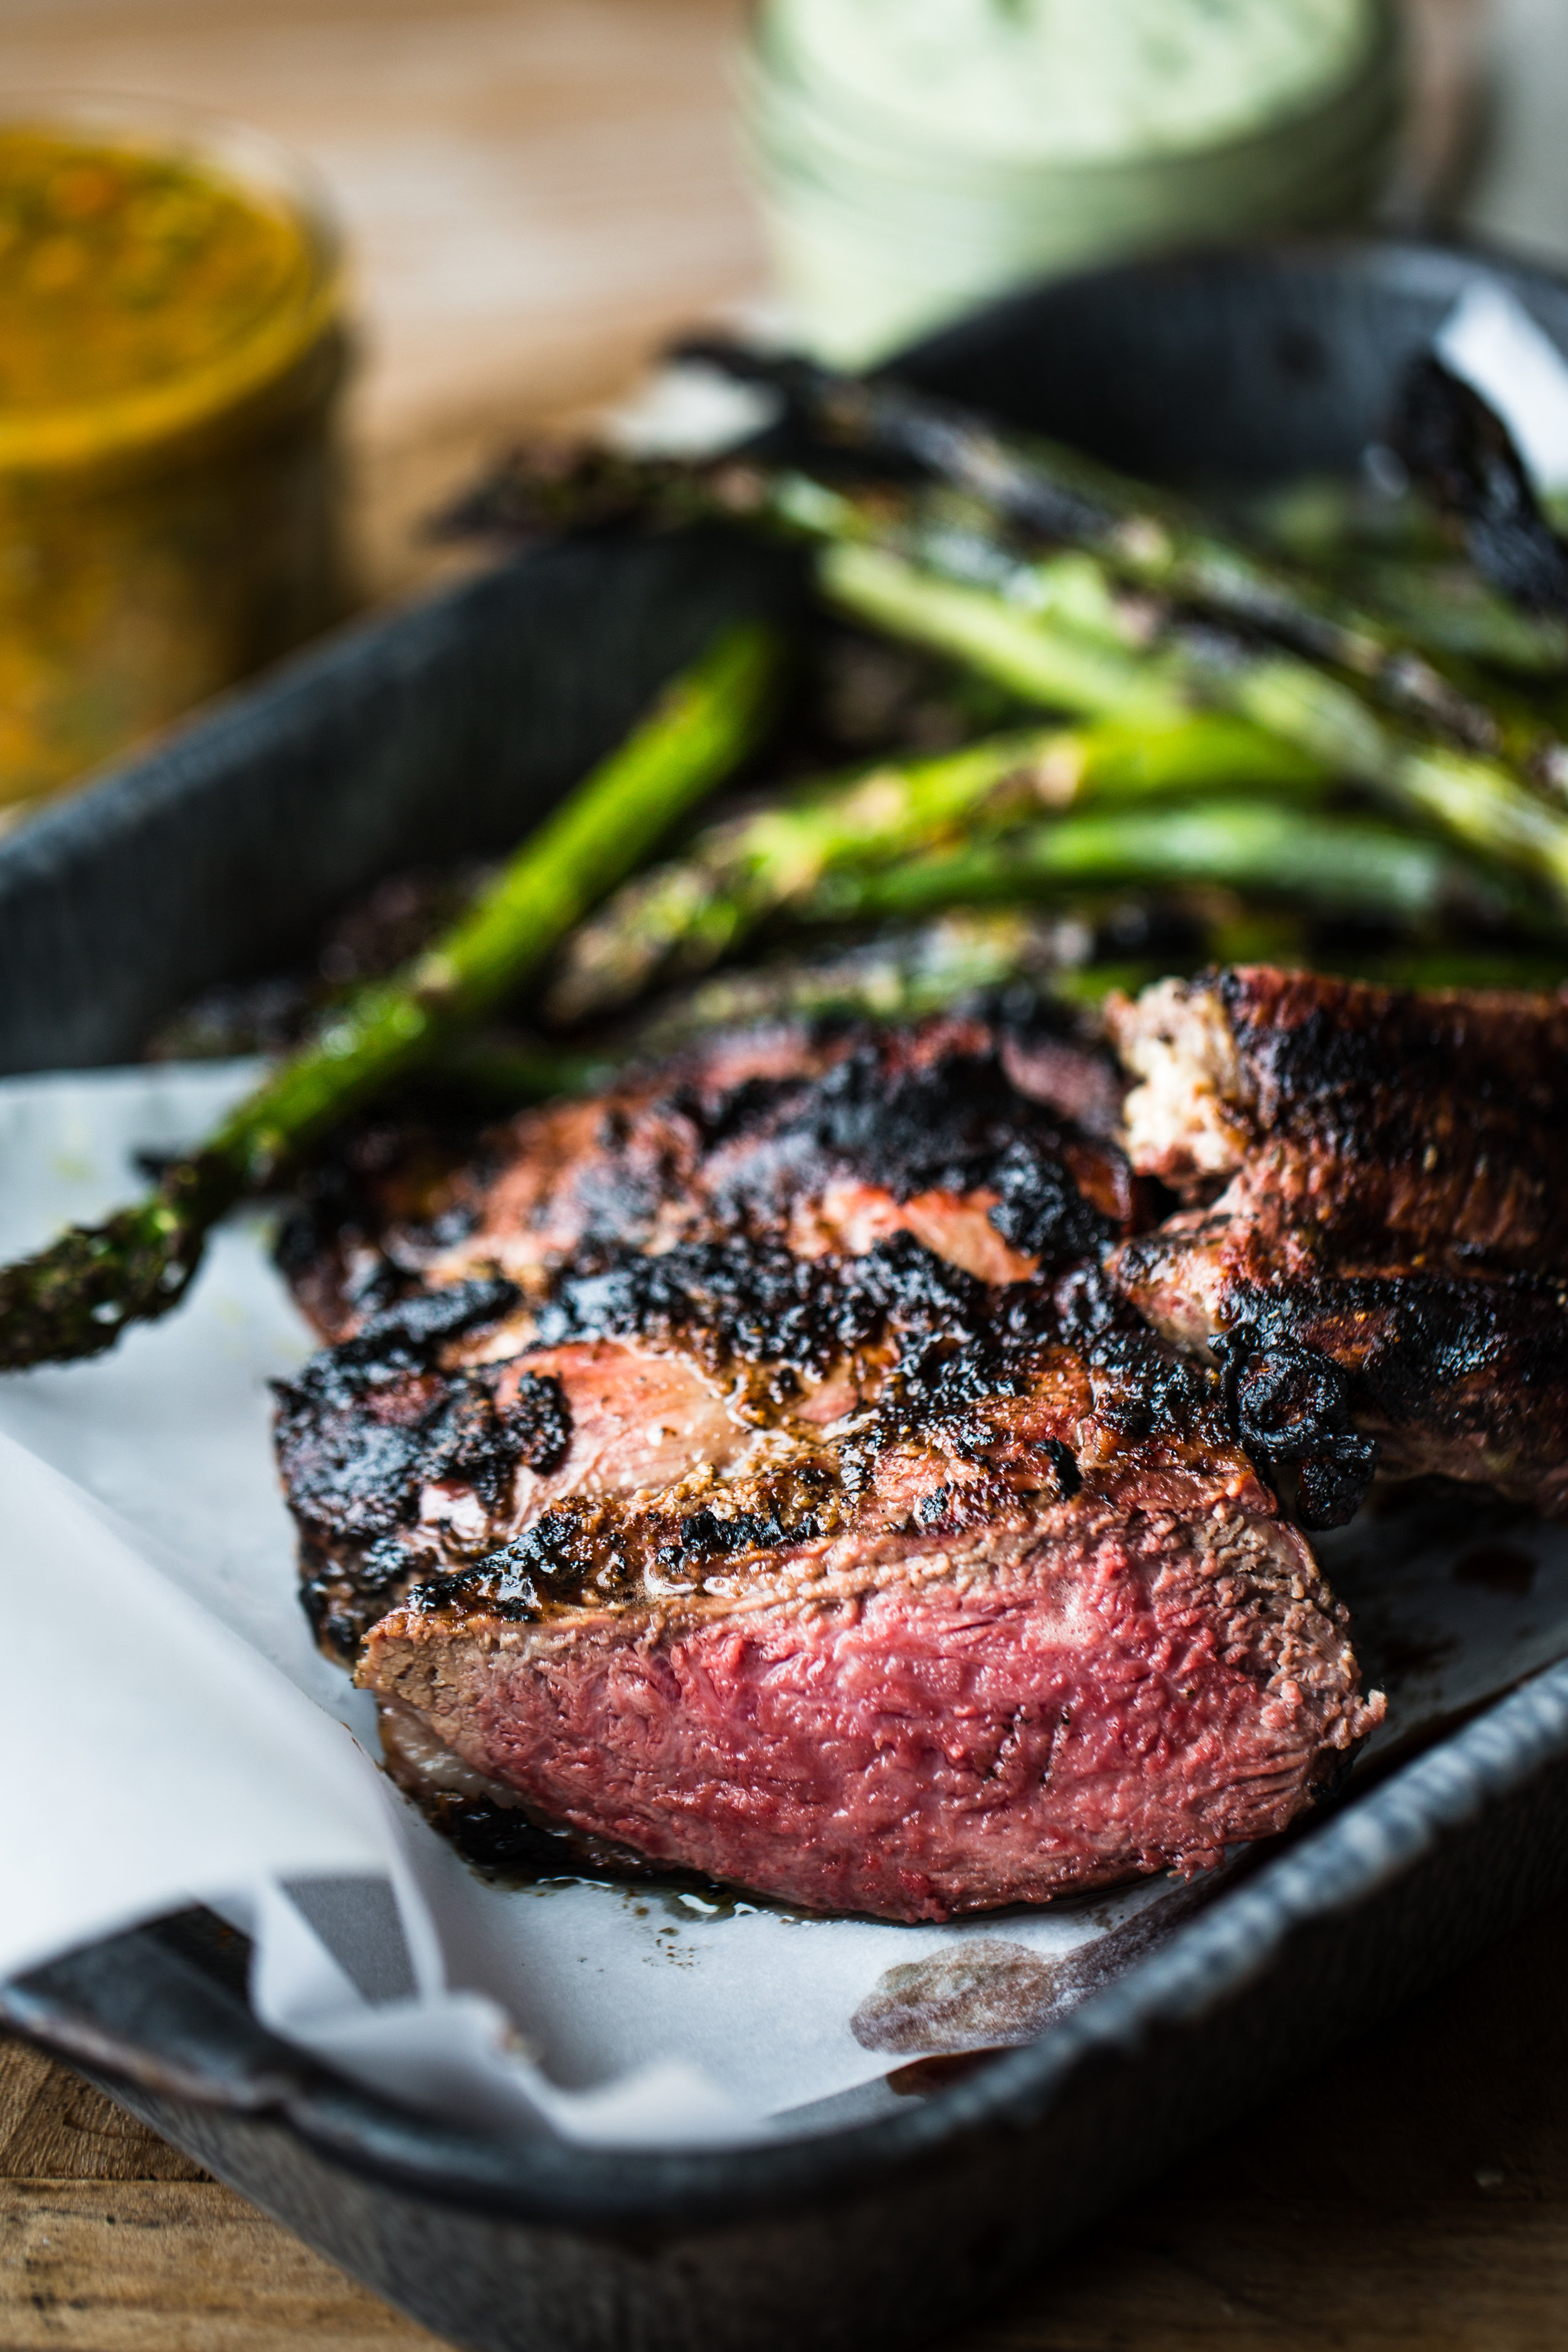 Grilled Lamb and Asparagus Dinner-1.jpg